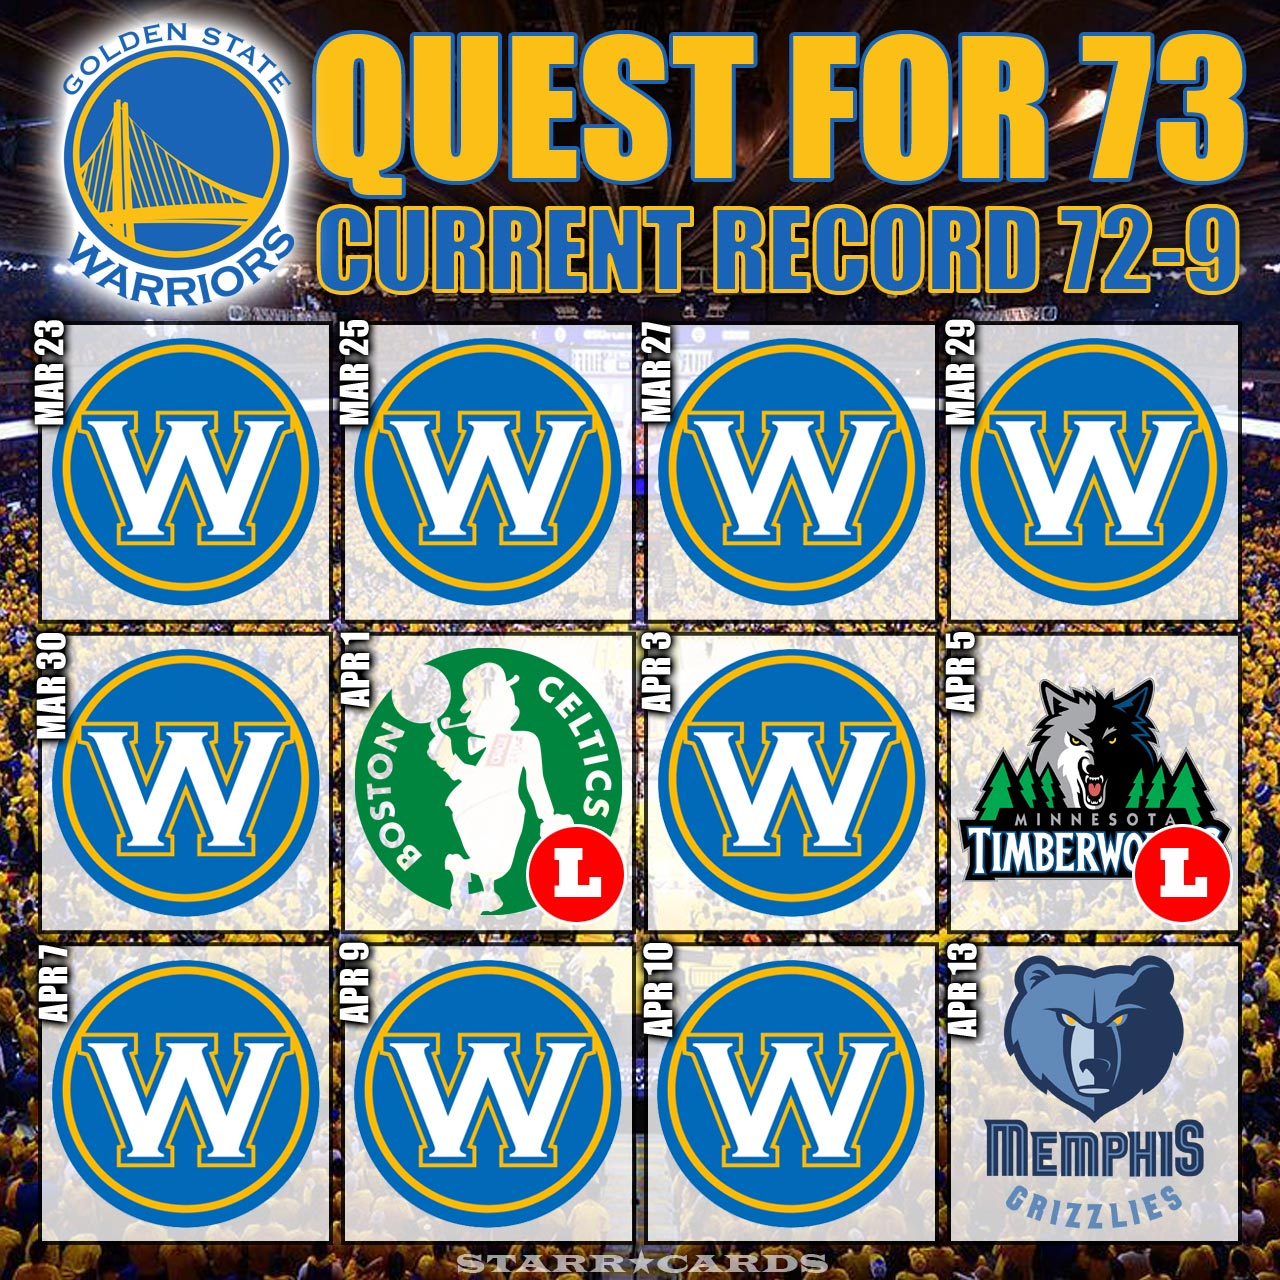 Quest for 73: Warriors improve to 72-9, set road wins record vs Spurs